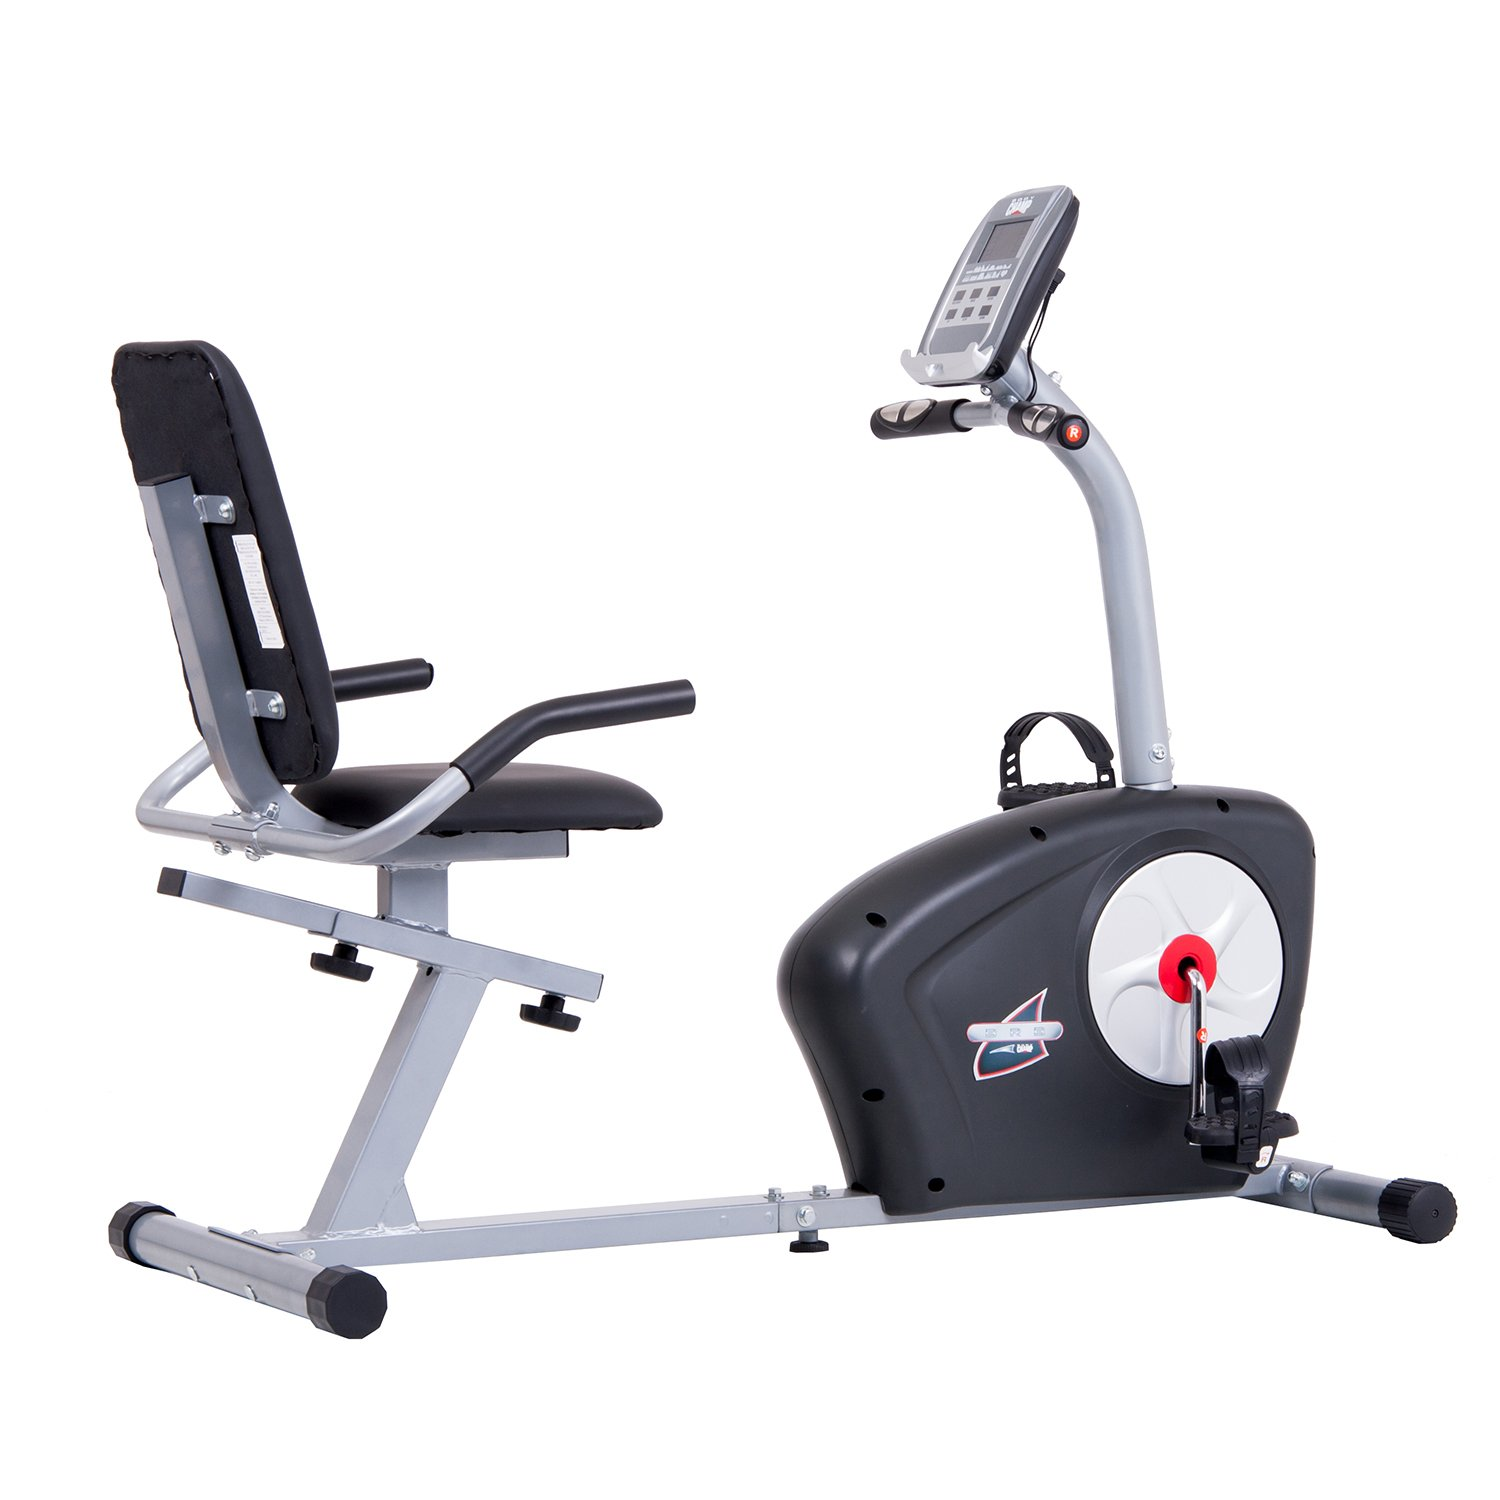 Body Champ Magnetic Recumbent Exercise Bike with Computer Program, Pulse and Resistance / Reclined Seat Back Support by Body Champ (Image #1)